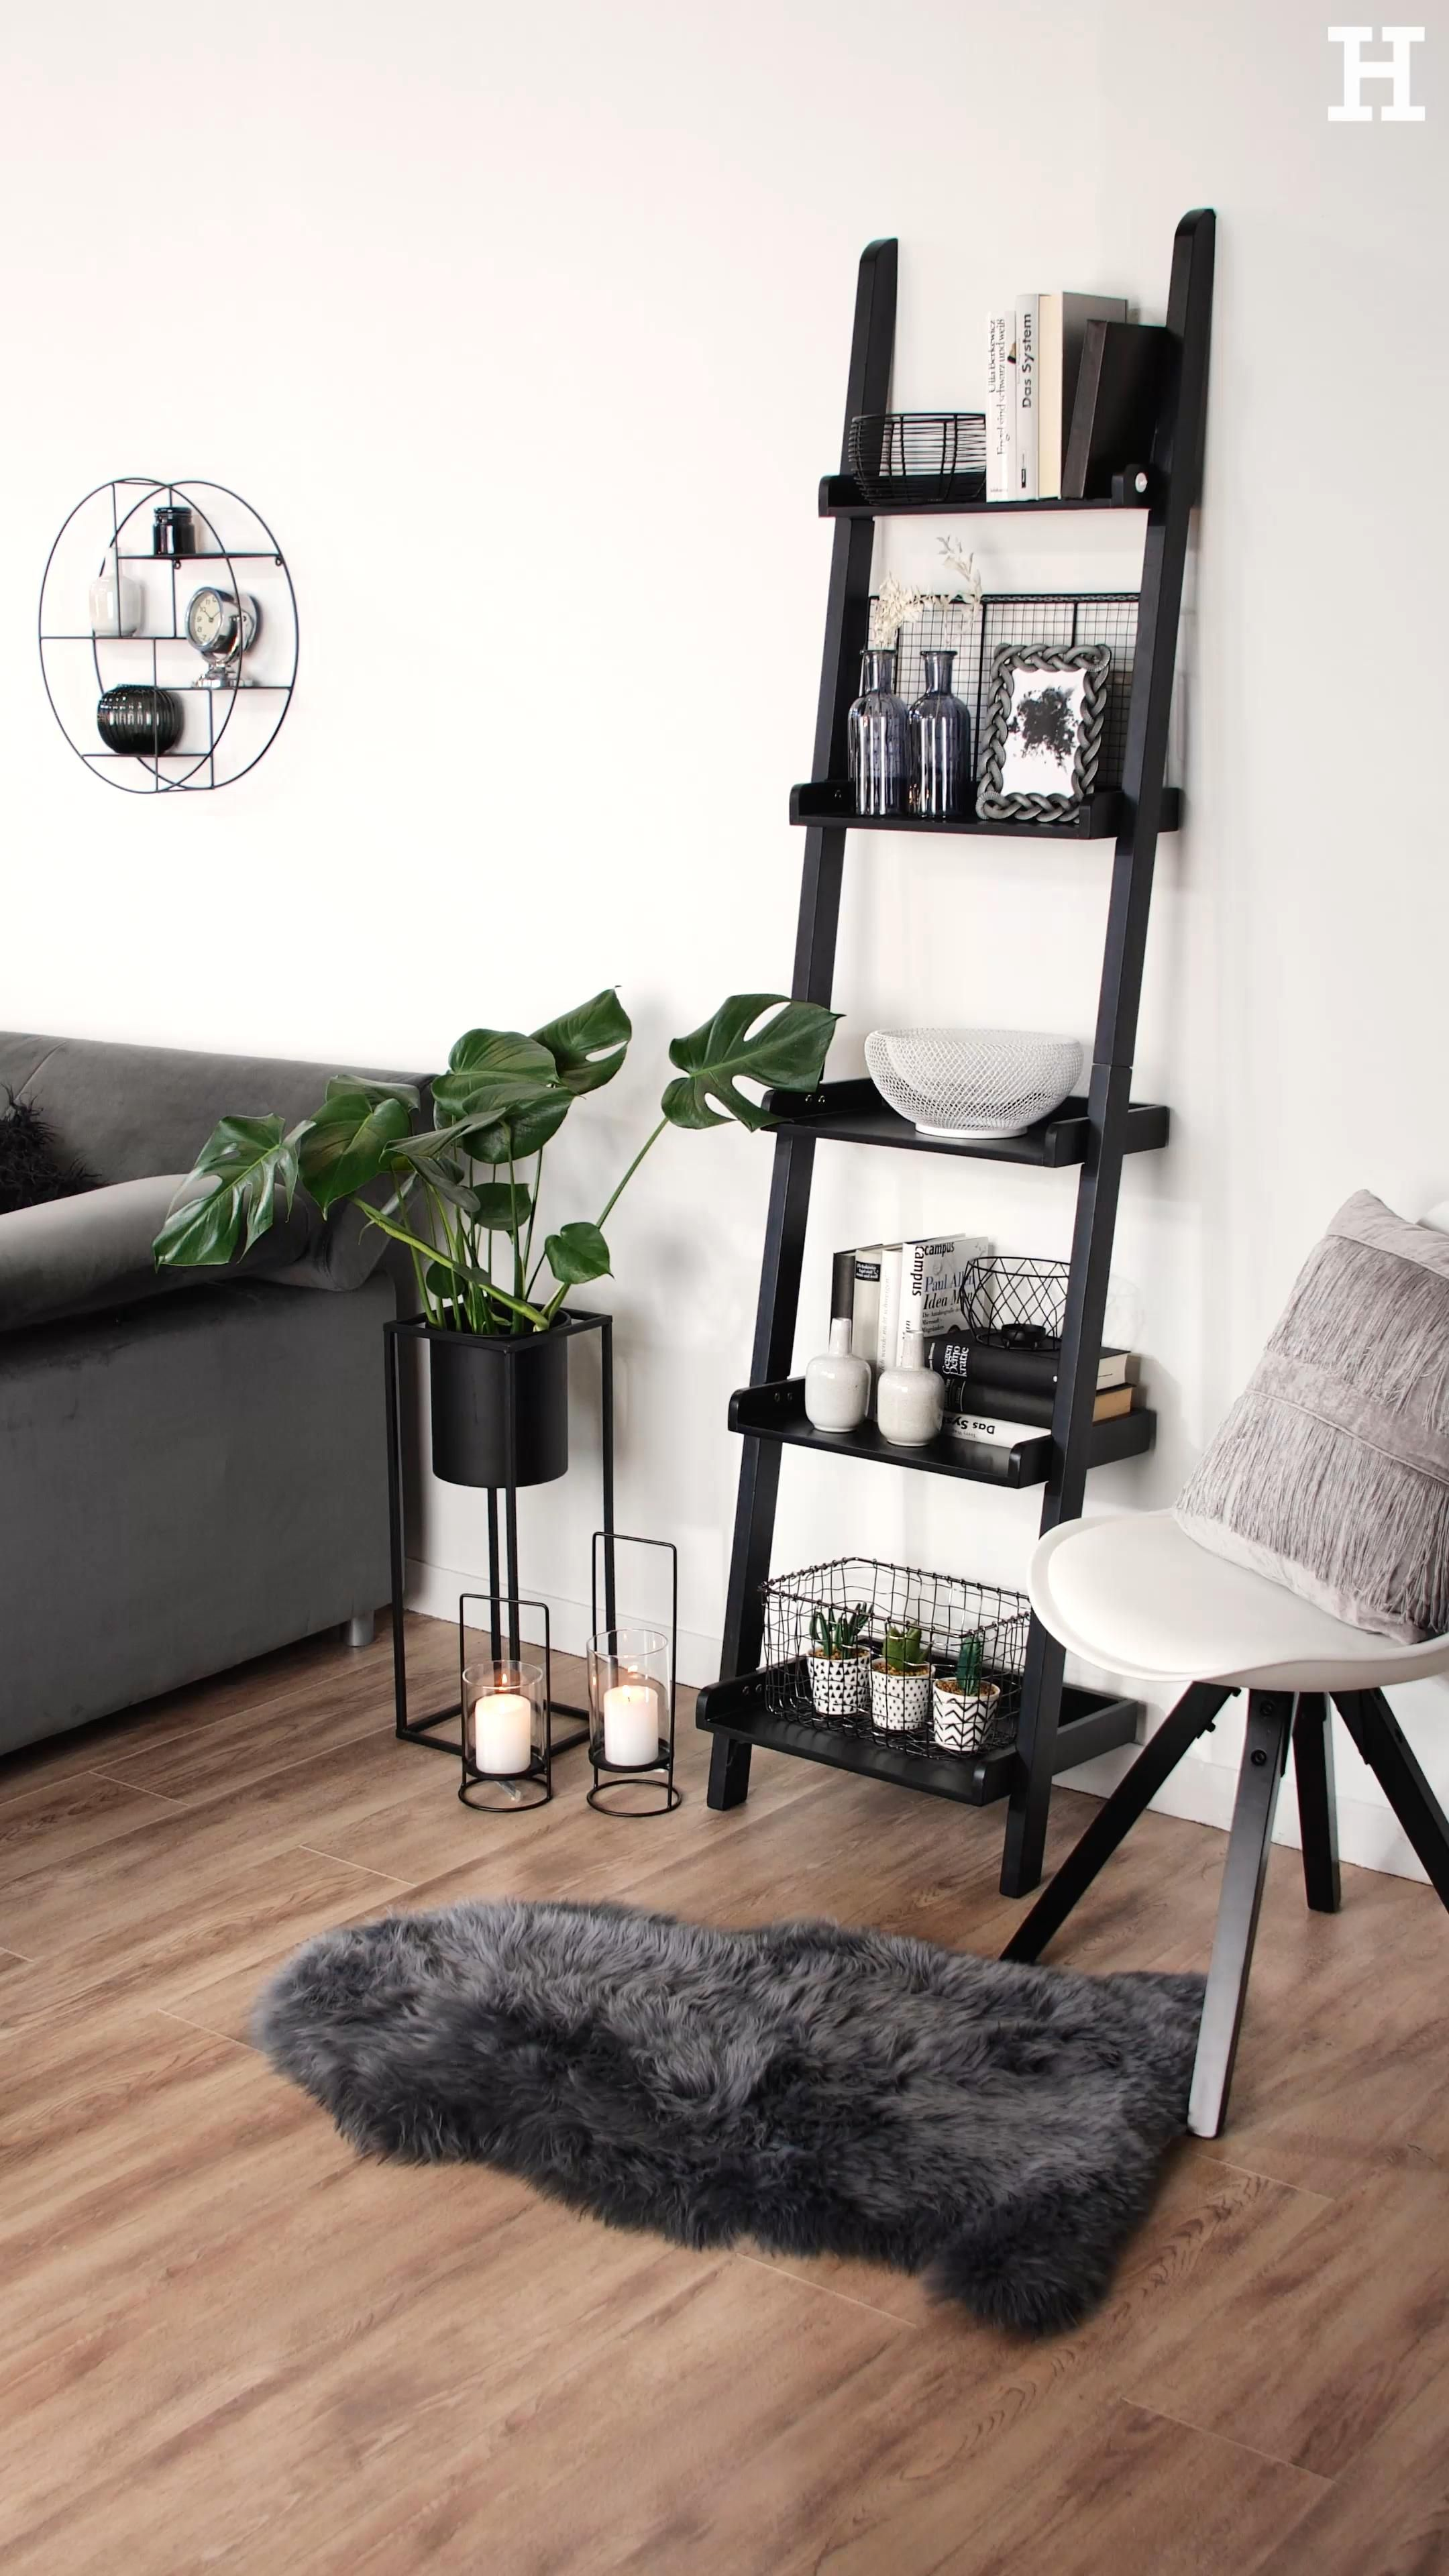 Photo of The mix of black, gray and white creates a classy and modern look